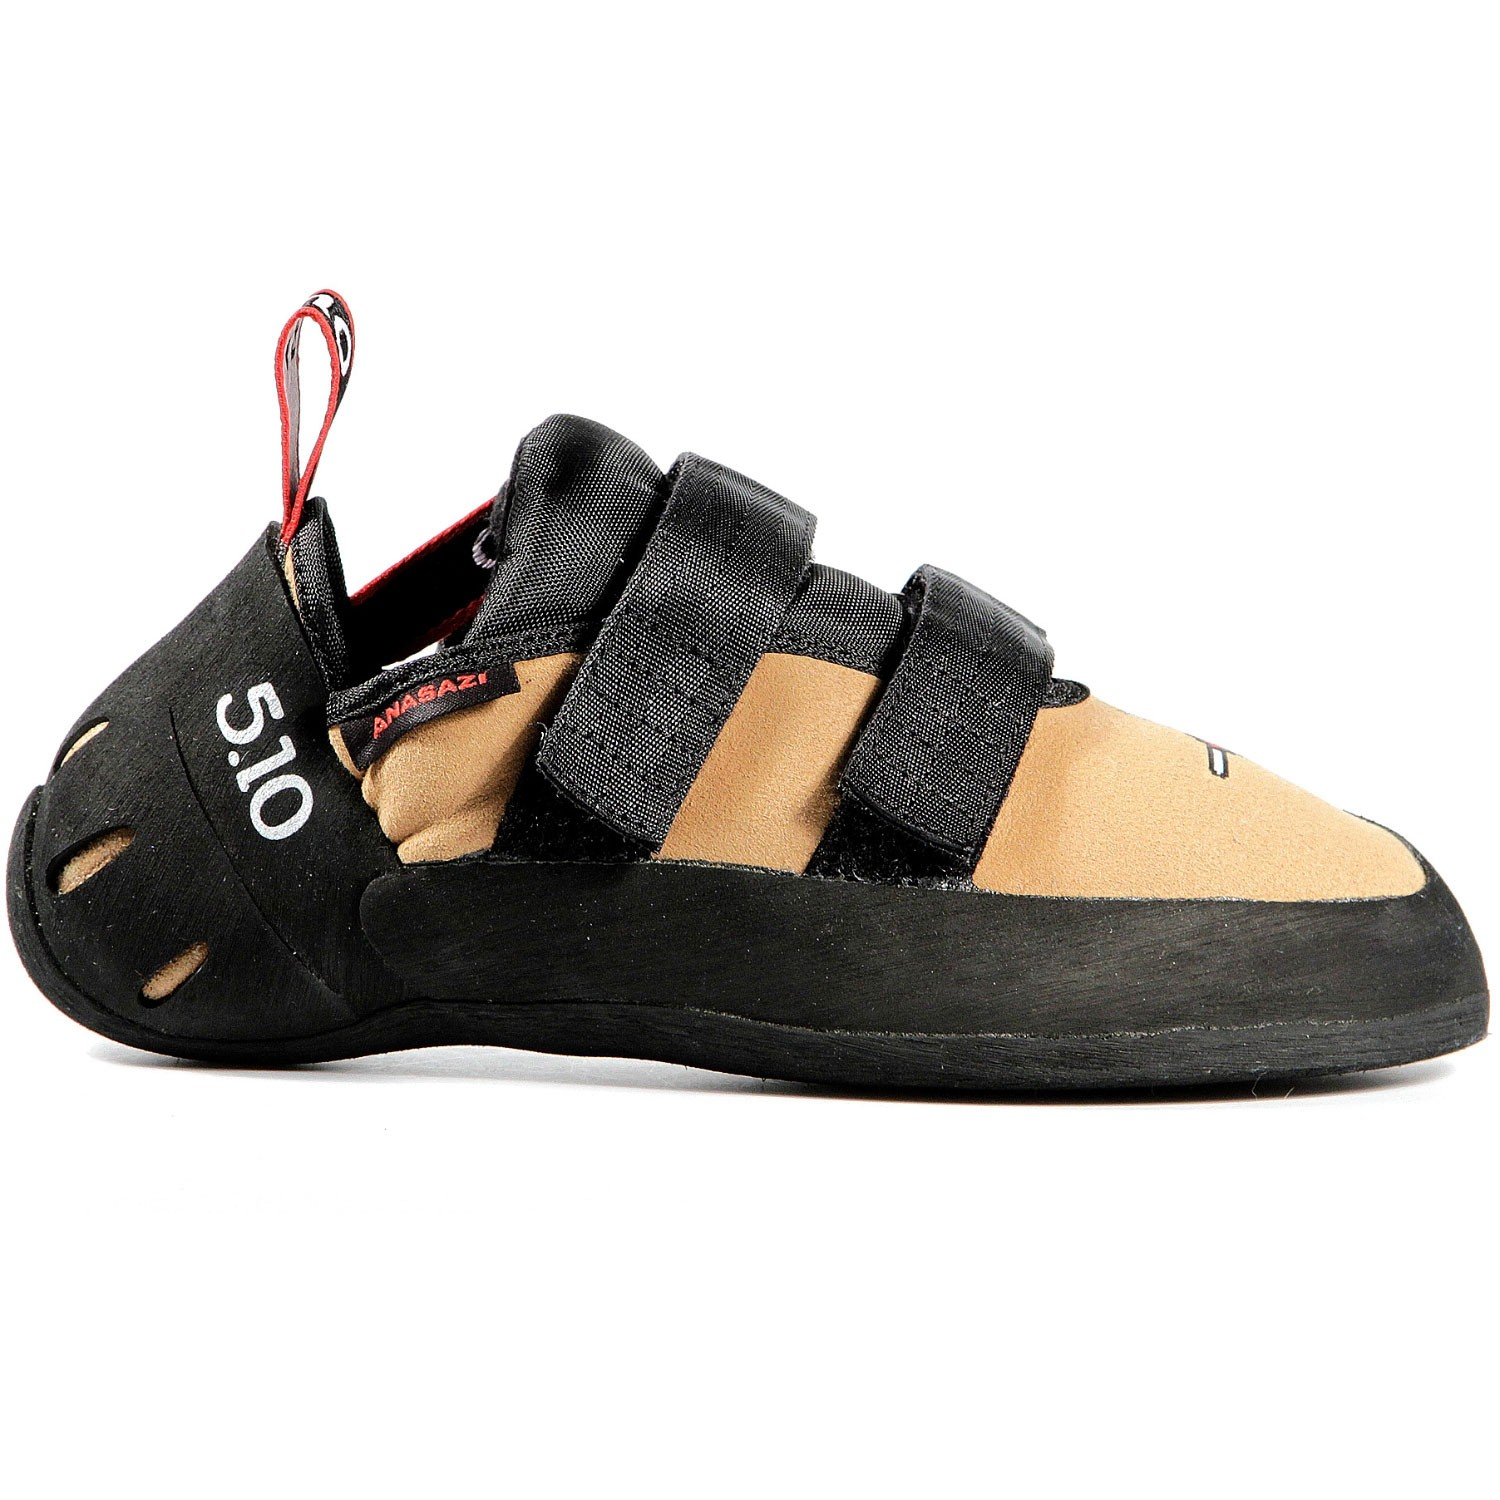 Five Ten Anasazi VCS Climbing Shoe